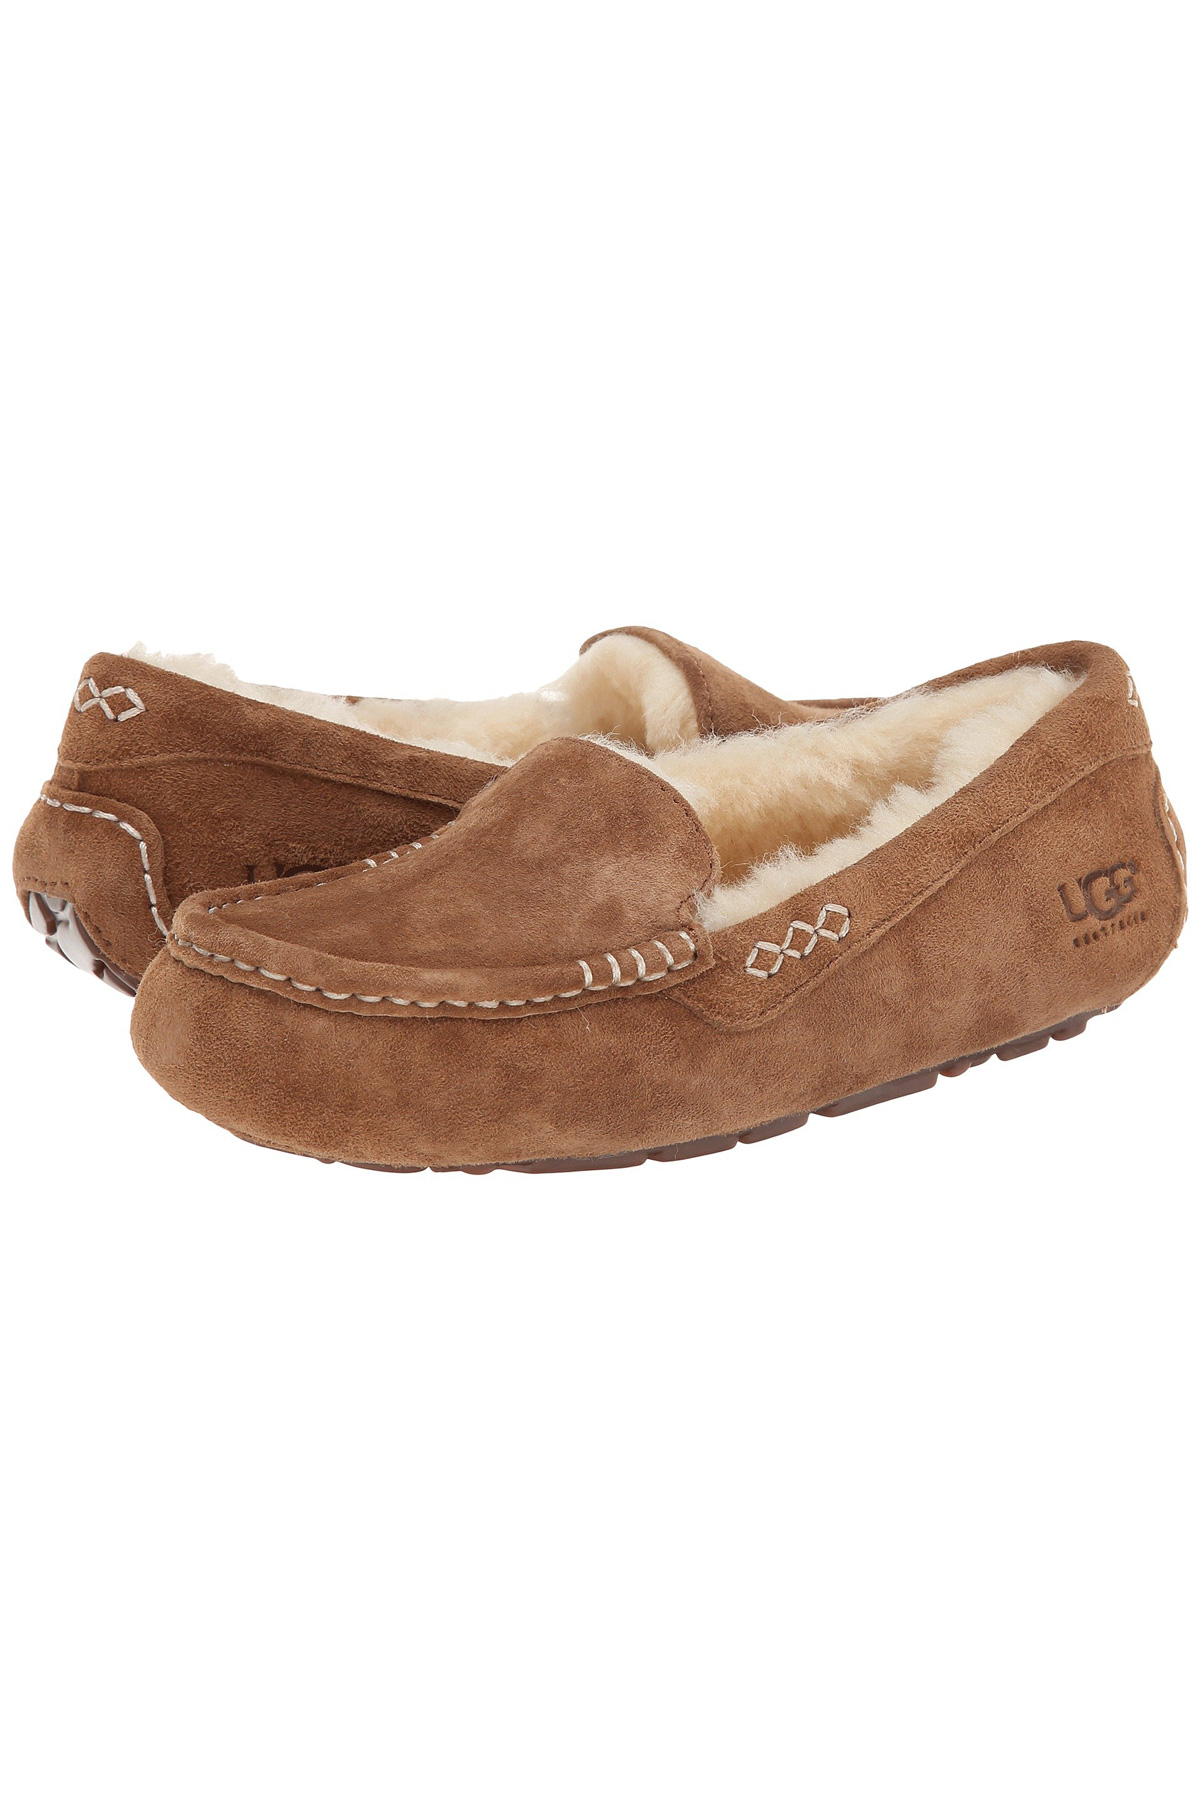 Ugg Ansley Slippers